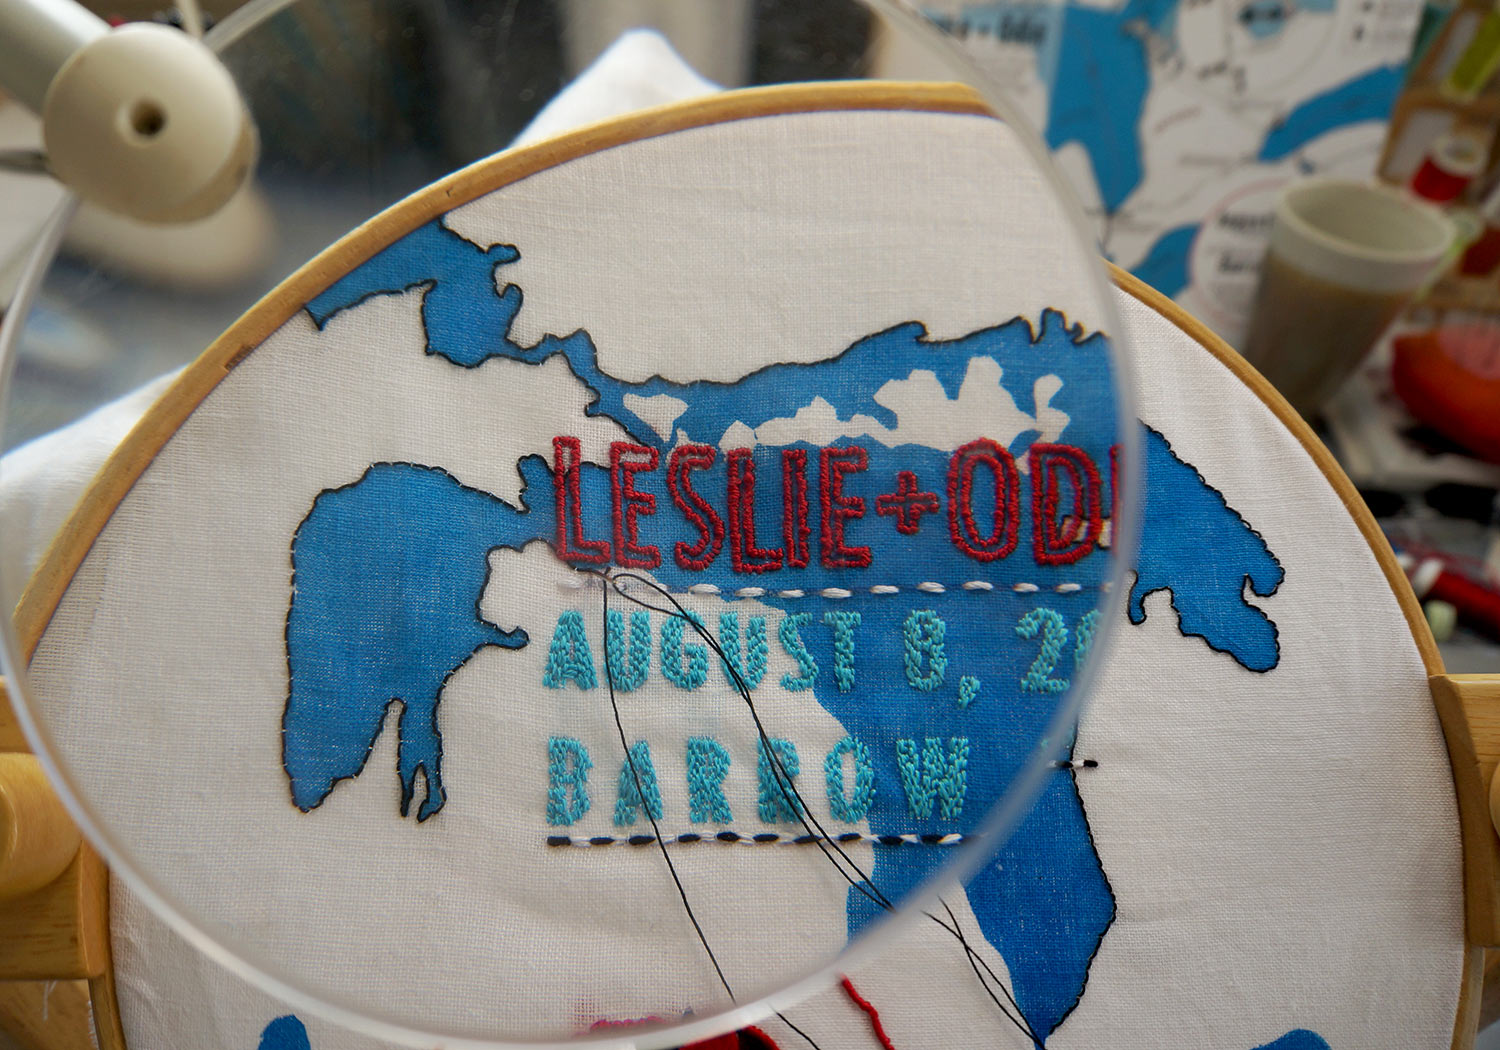 At work on the embroidery using a frame stand and magnifying lens